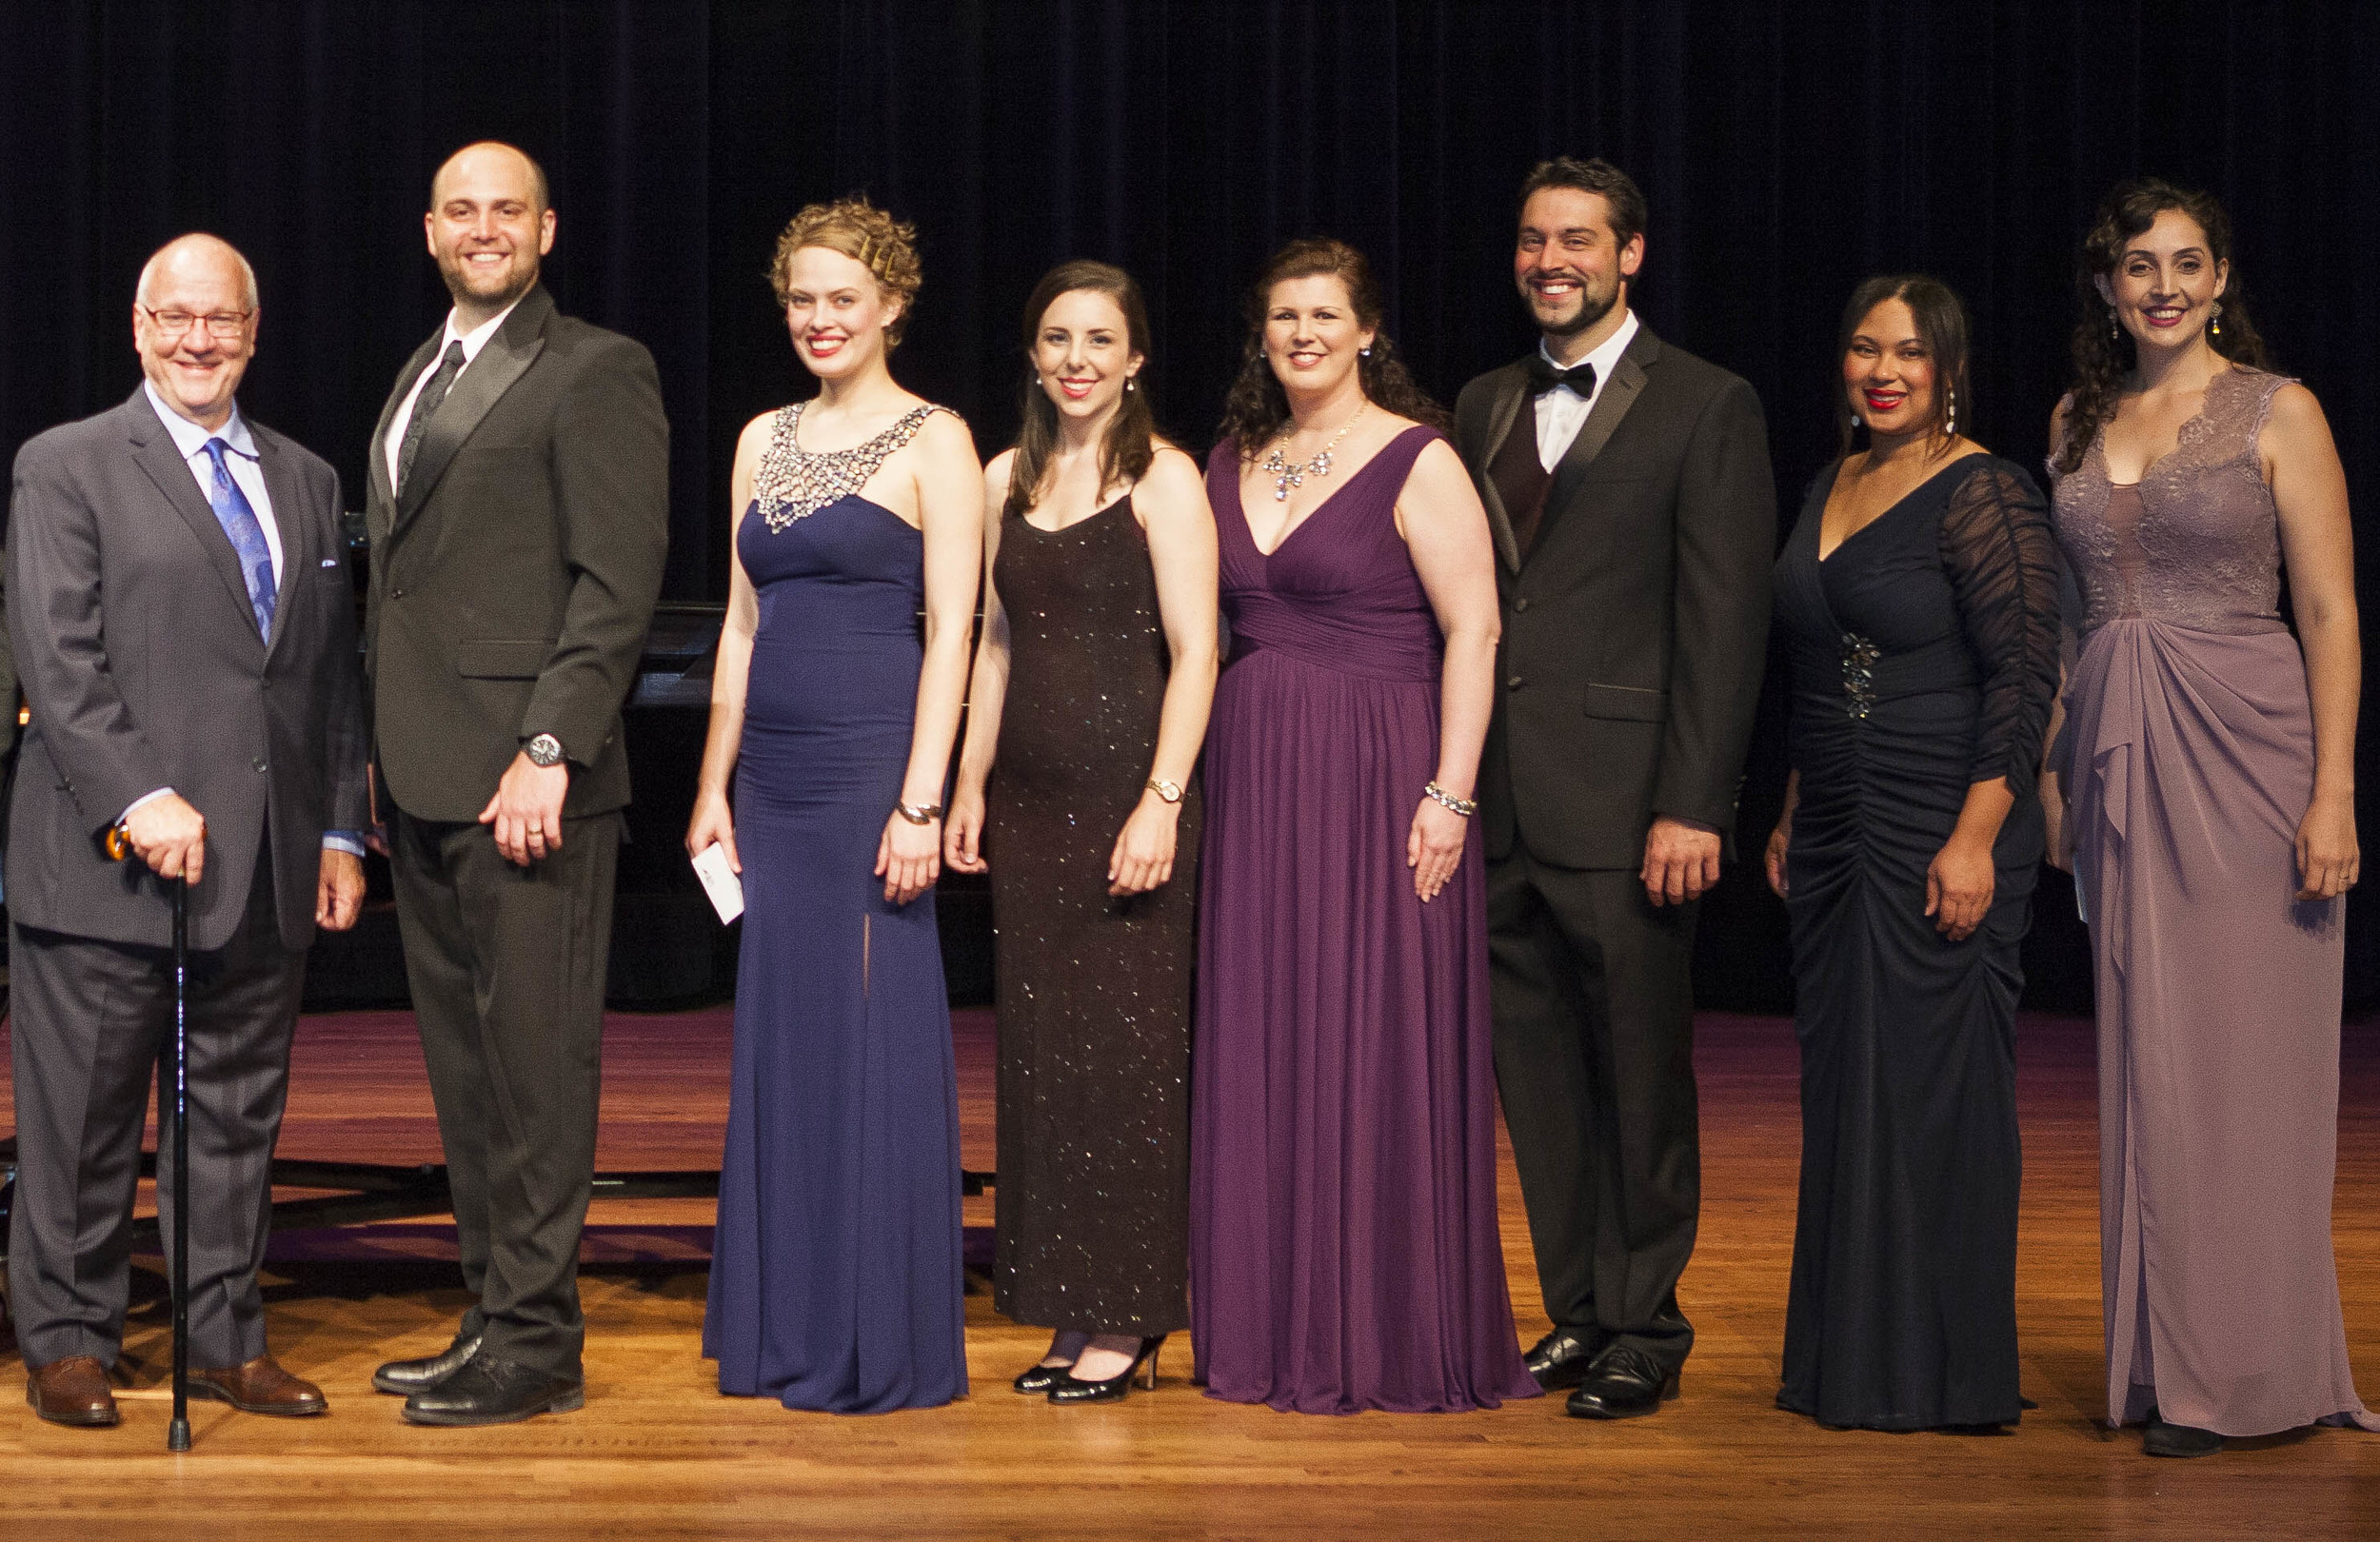 JAMES TOLAND WITH TIER I FINALISTS (L-R) BRENT TURNER, EMMA MCNAIRY, SARA LEMESH, ELIZABETH BALDWIN, JASON DUIKA, JENNIFER LINDSAY AND CLARISSA LYONS